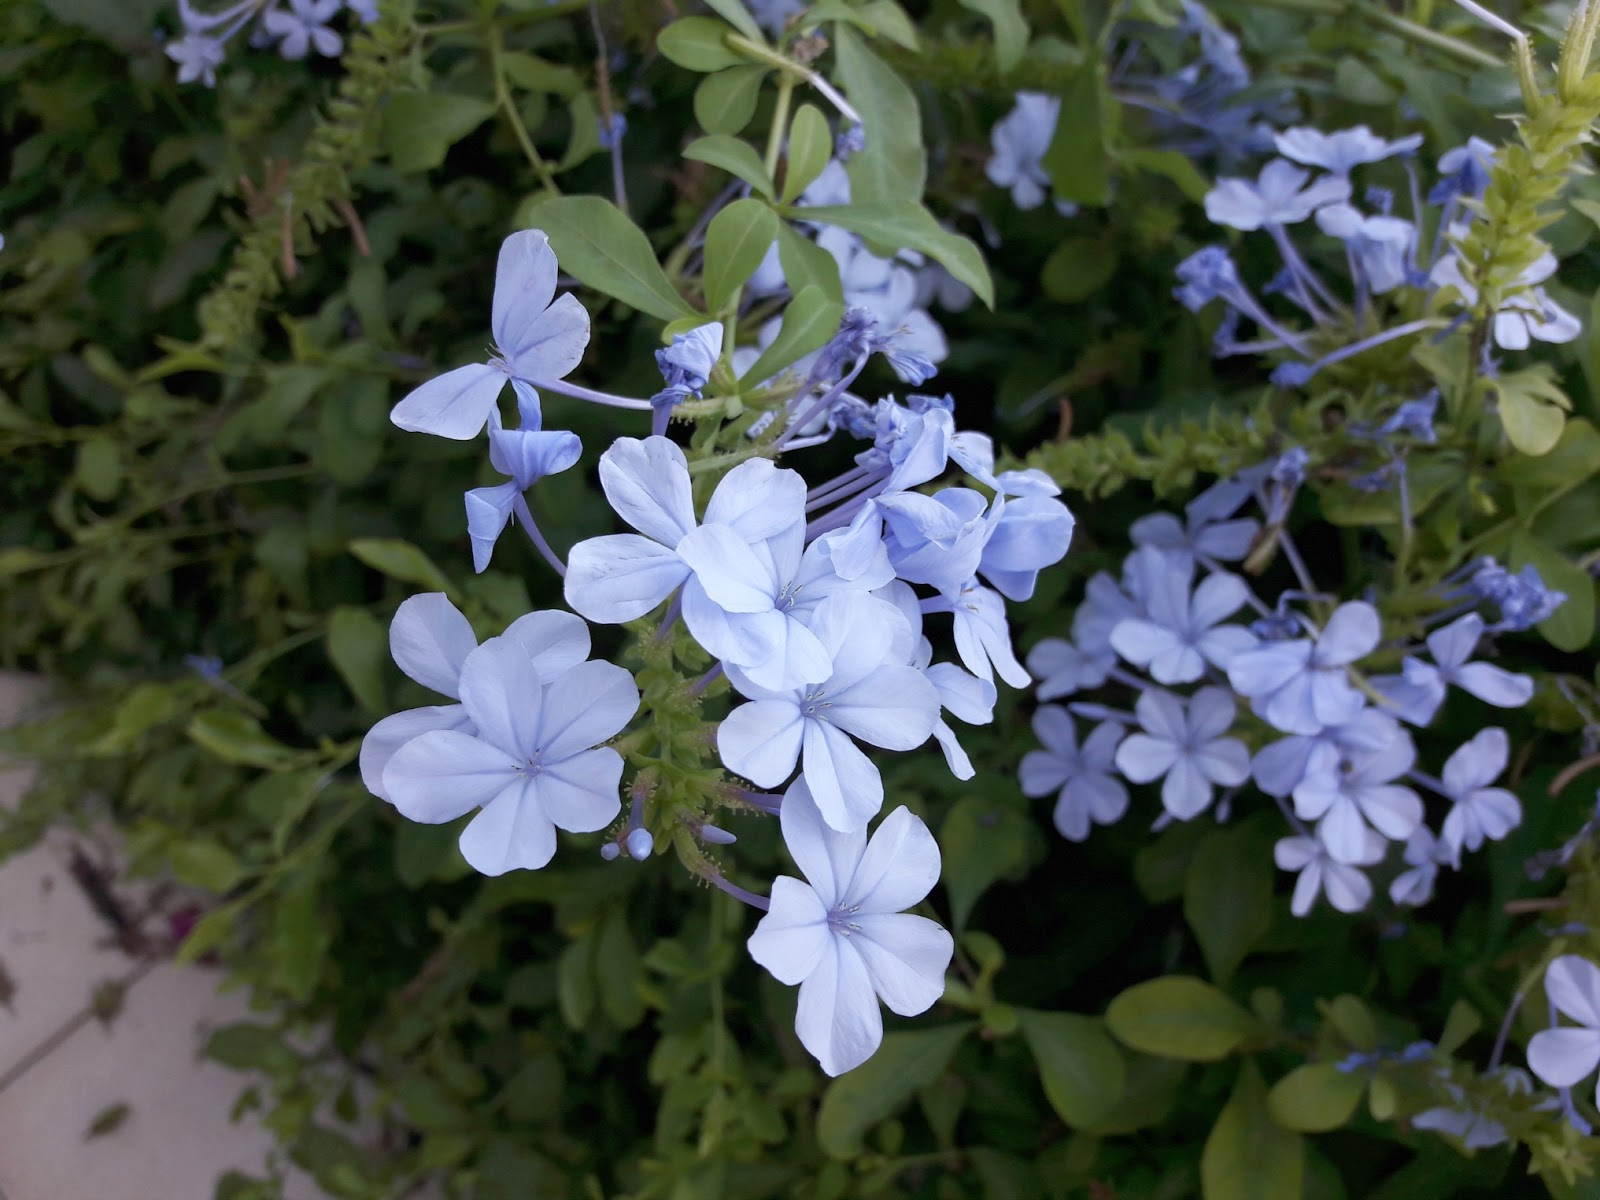 Winwick mum home again its a bit sad really and i speak as one whos not always very good at remembering to water houseplants i dont know what the blue flowers are izmirmasajfo